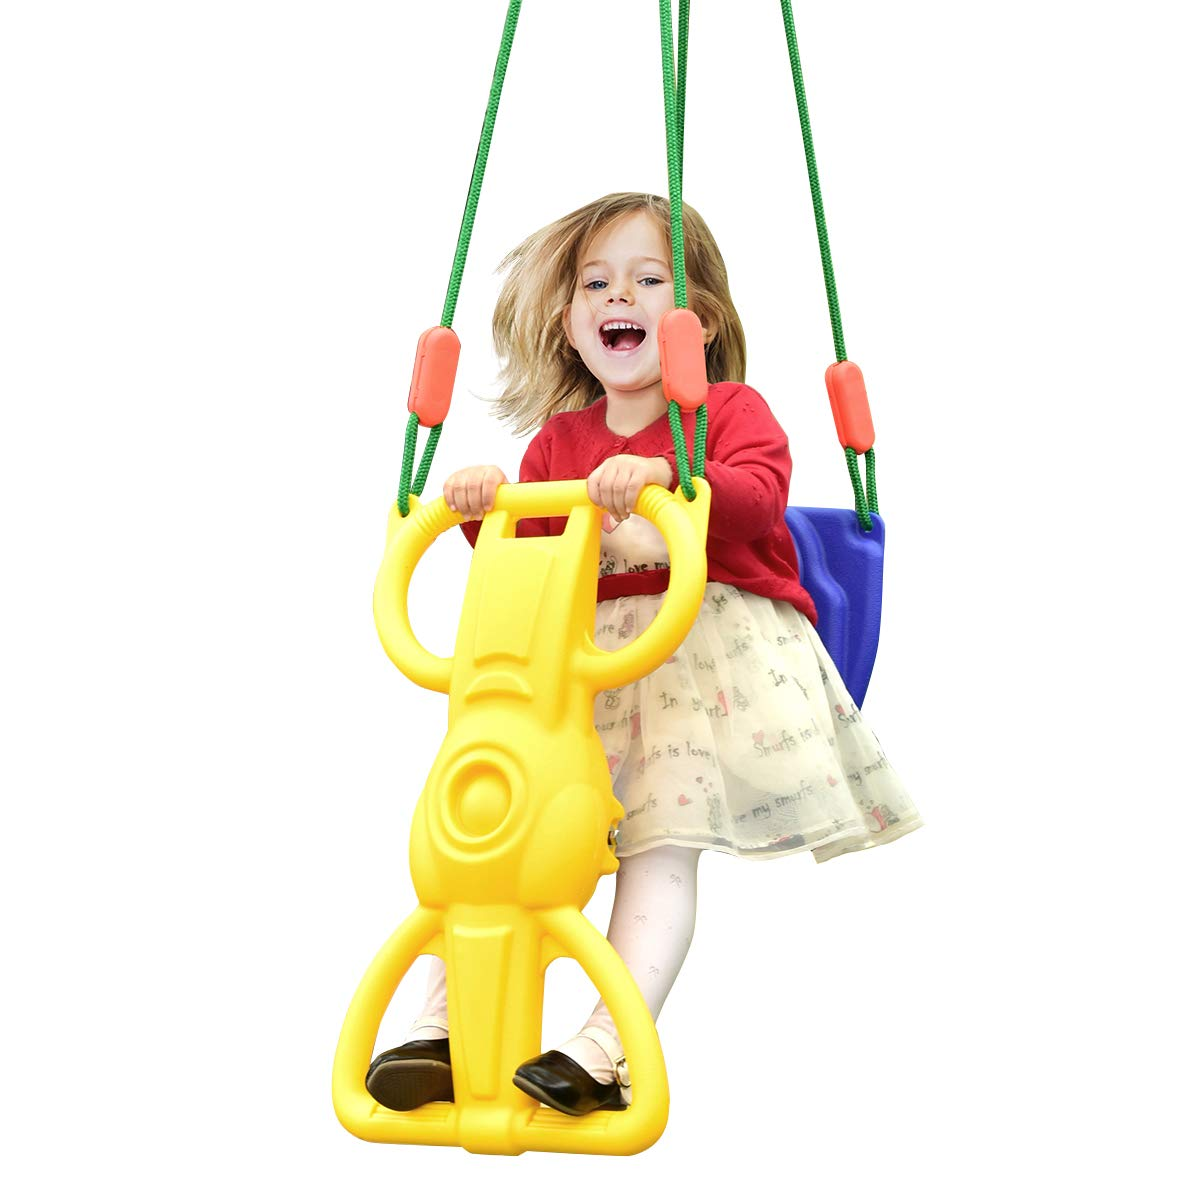 Costzon Rider Swing with Hangers, Wind Rider Glider Swing for Kids Playground (Rider Swing for 1 Kid) by Costzon